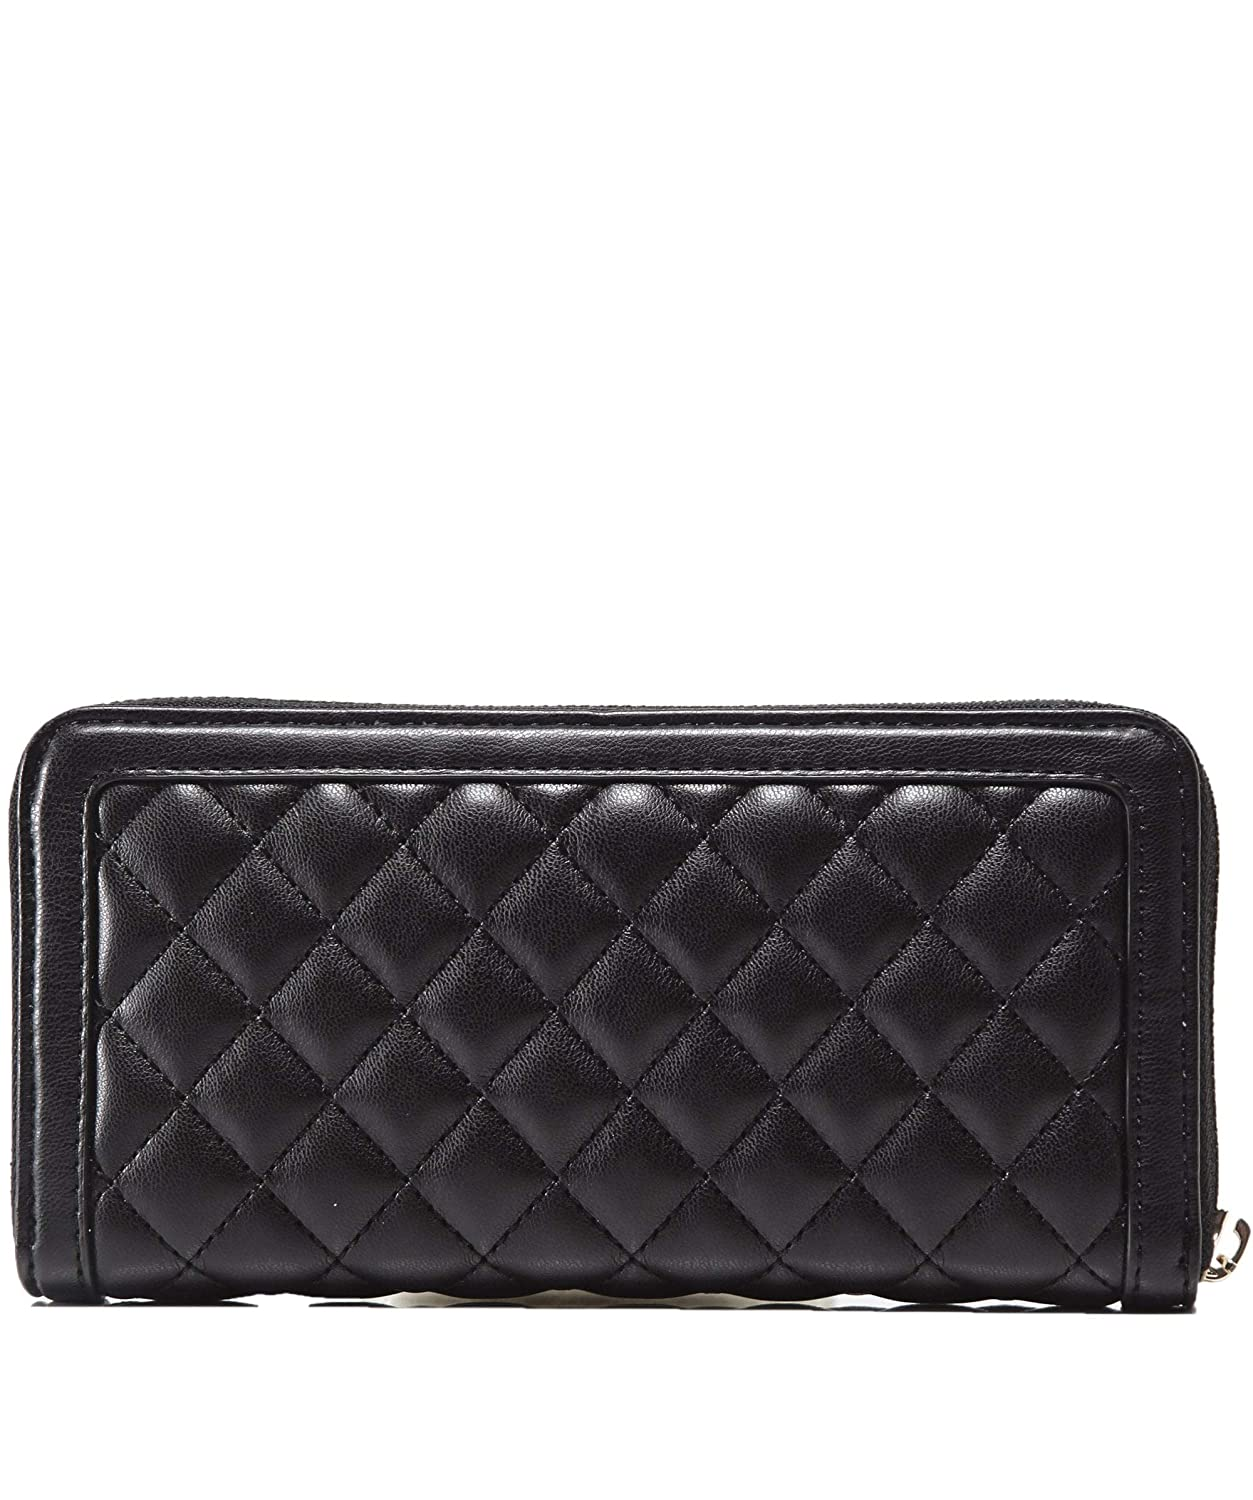 e0efd0670f05 Amazon.com: Moschino Love Moschino Women's Quilted Logo Purse Black One  Size: Shoes